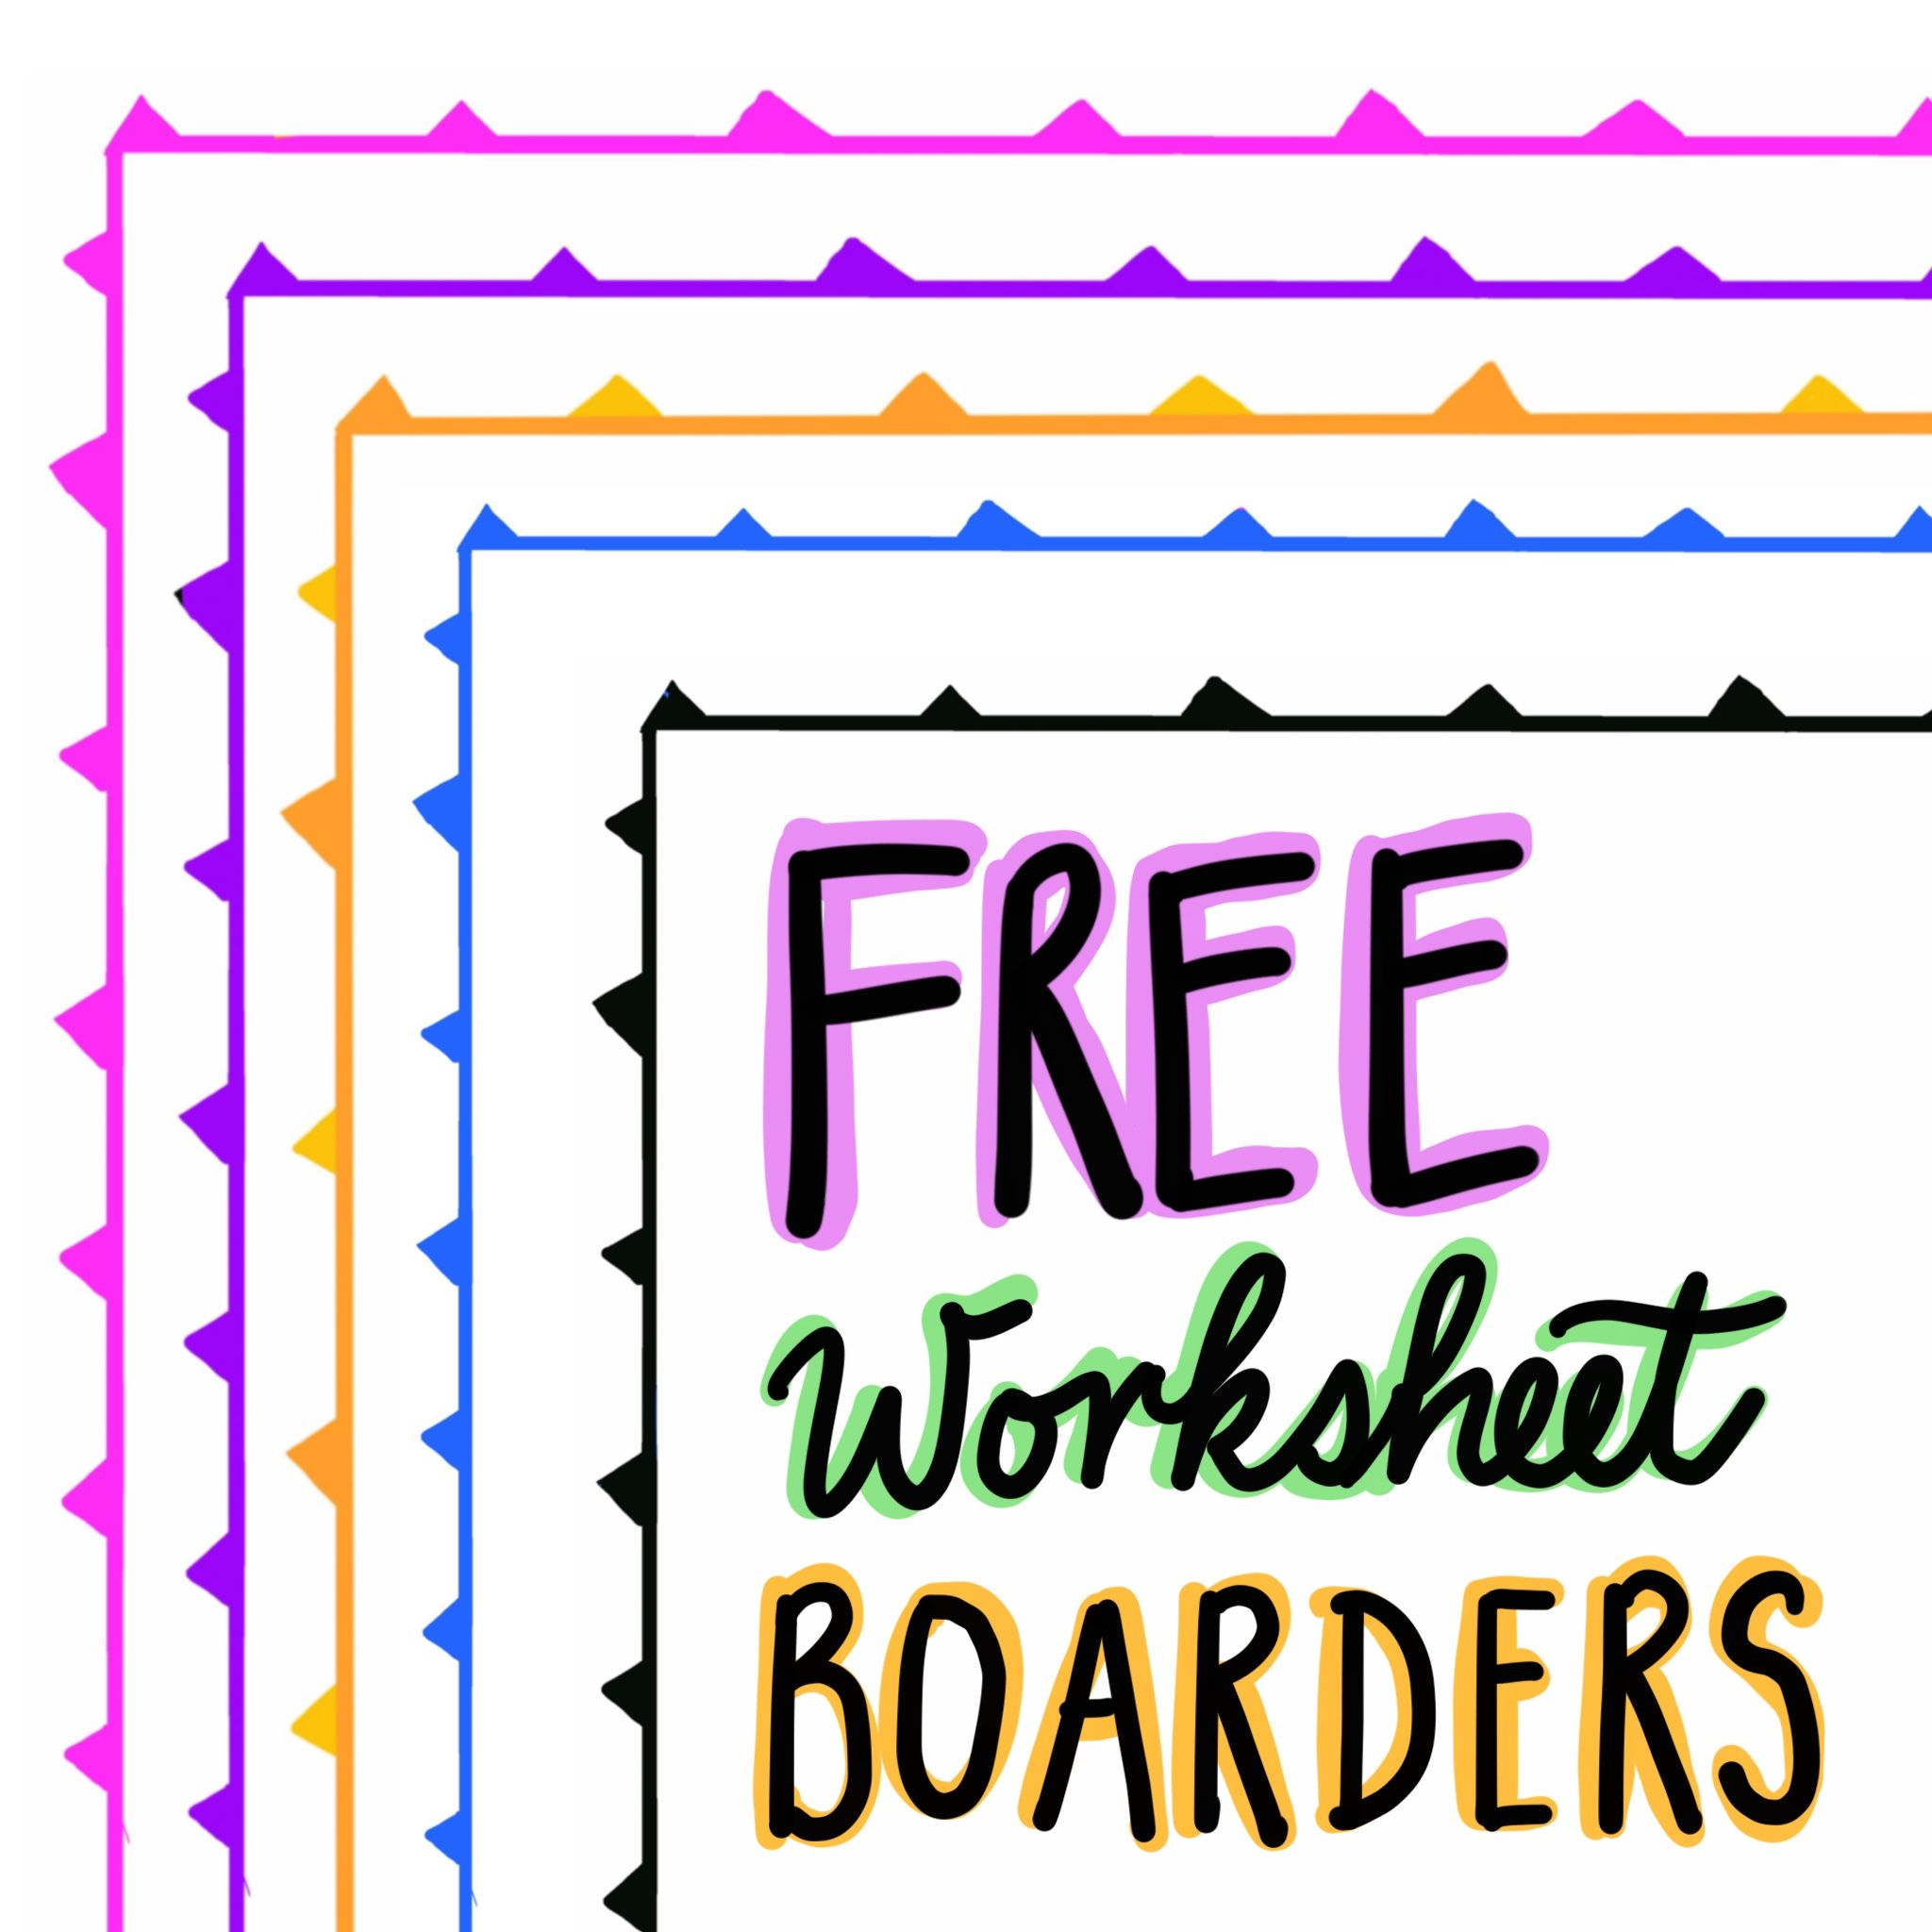 Free Flag Worksheet Boarders